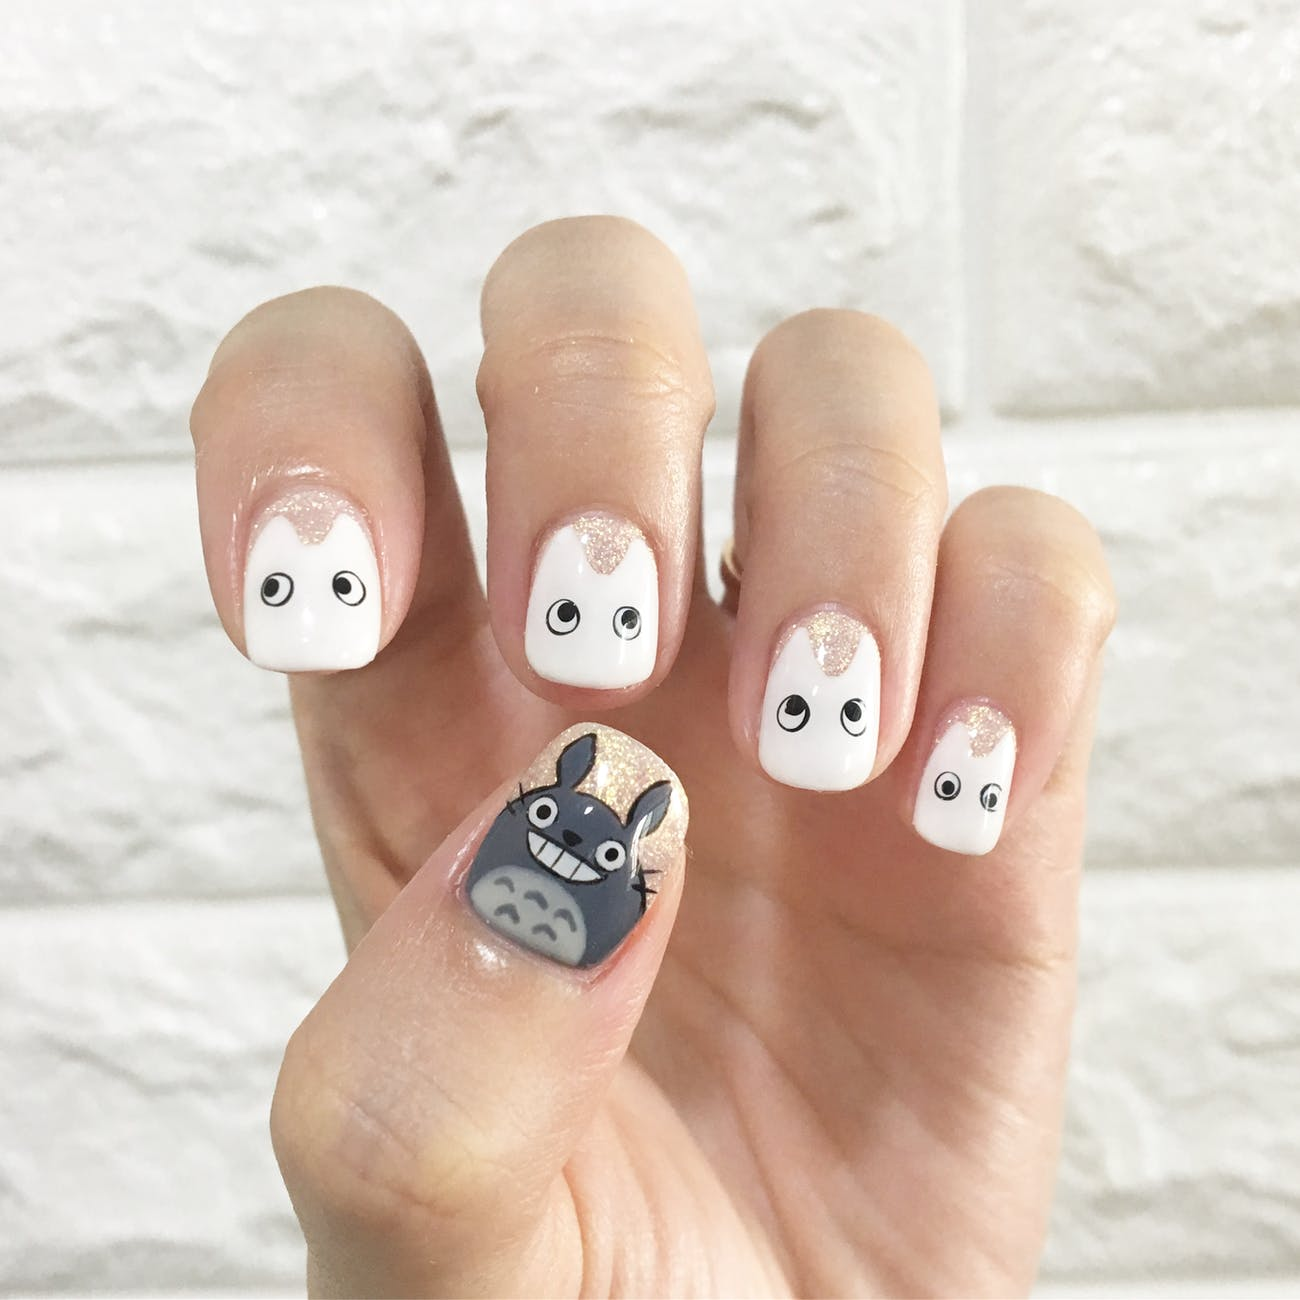 Check out Cute Easy Nail Designs | Japanese Emoji Nail Art Tutorial at https://cuteoutfits.com/japanese-emoji-cute-easy-nail-designs/